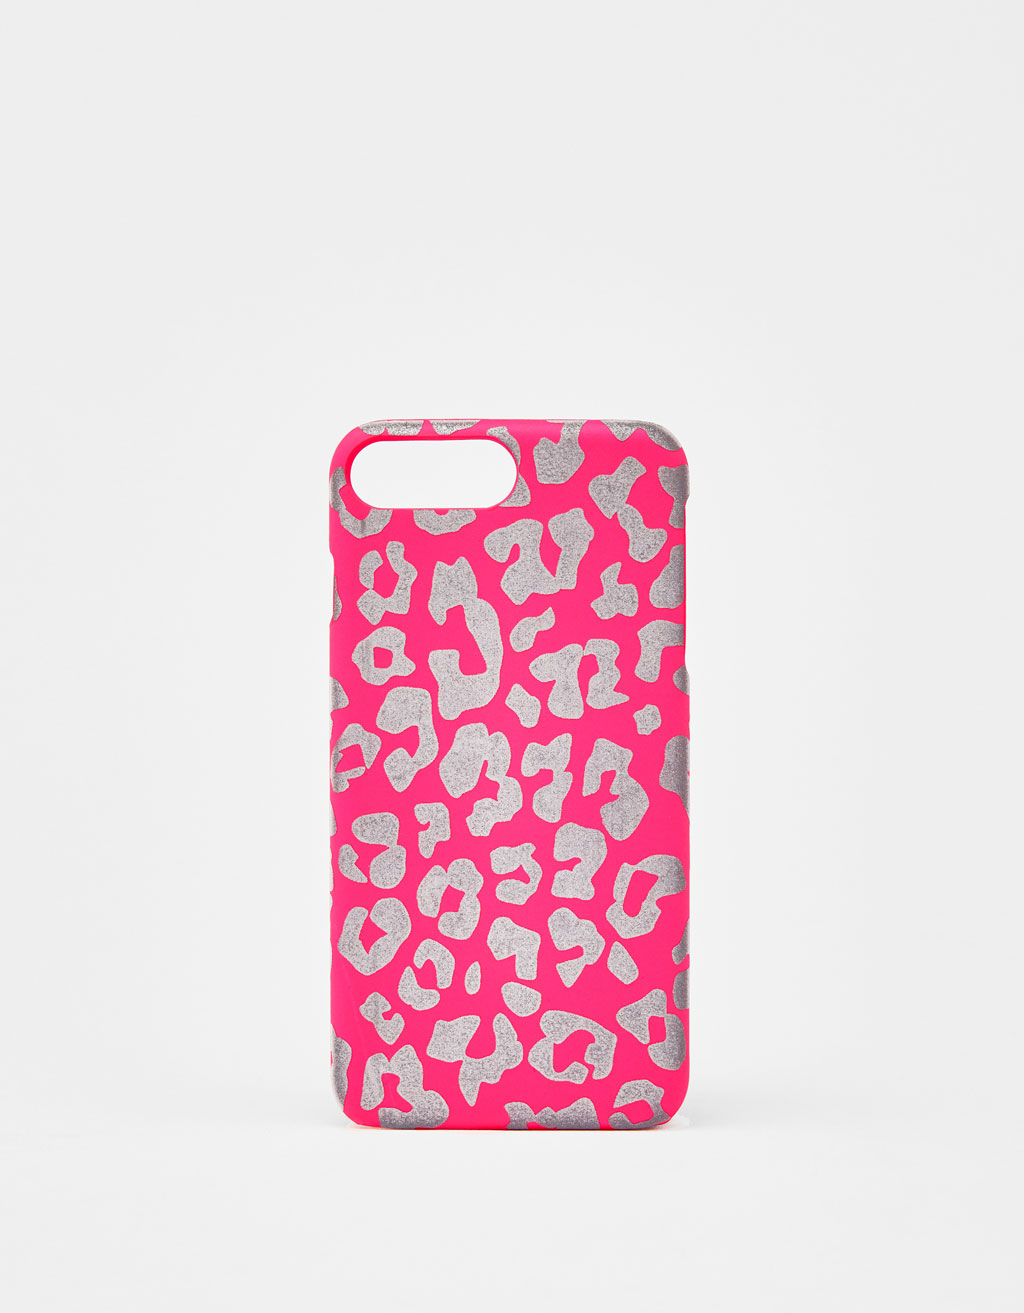 Carcasa leopardo reflectante iPhone 6 plus / 7 plus / 8 plus